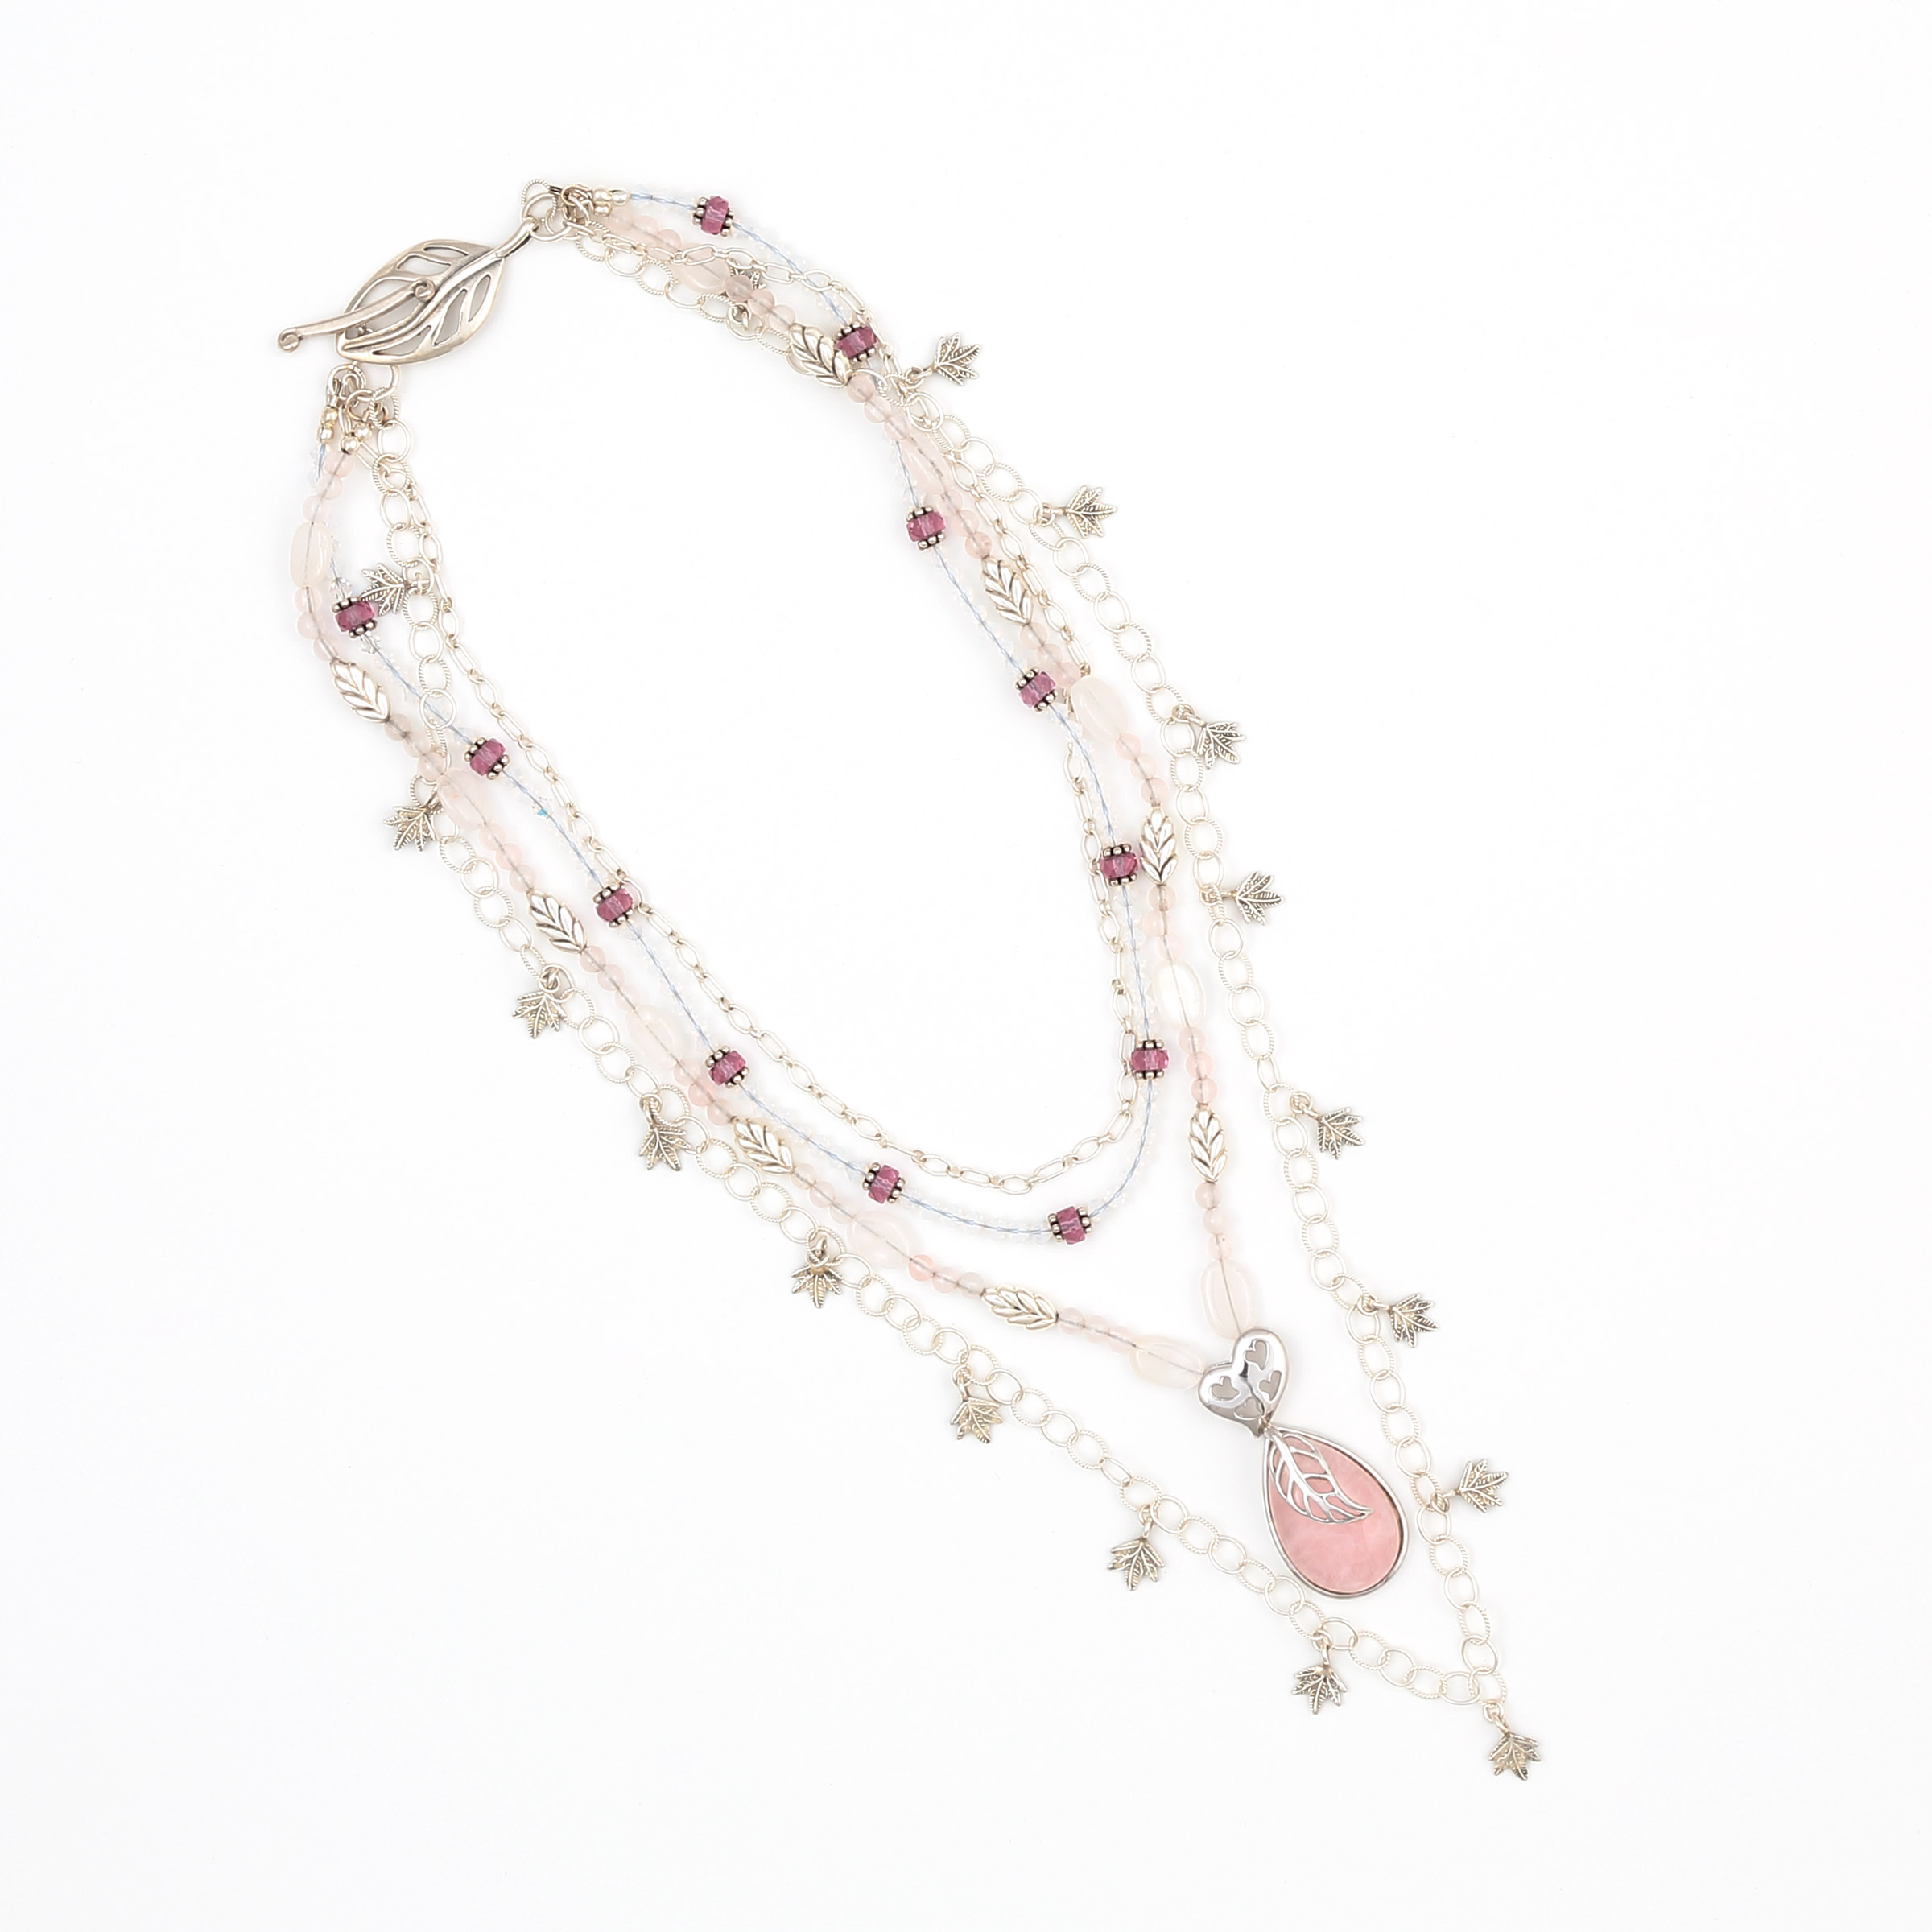 ROSE INGENUITY CONVERTIBLE NECKLACE-dusty rose vintage art glass and pink Morganite and opalescent Moonstone gemstones in a sterling silver multi strand convertible necklace